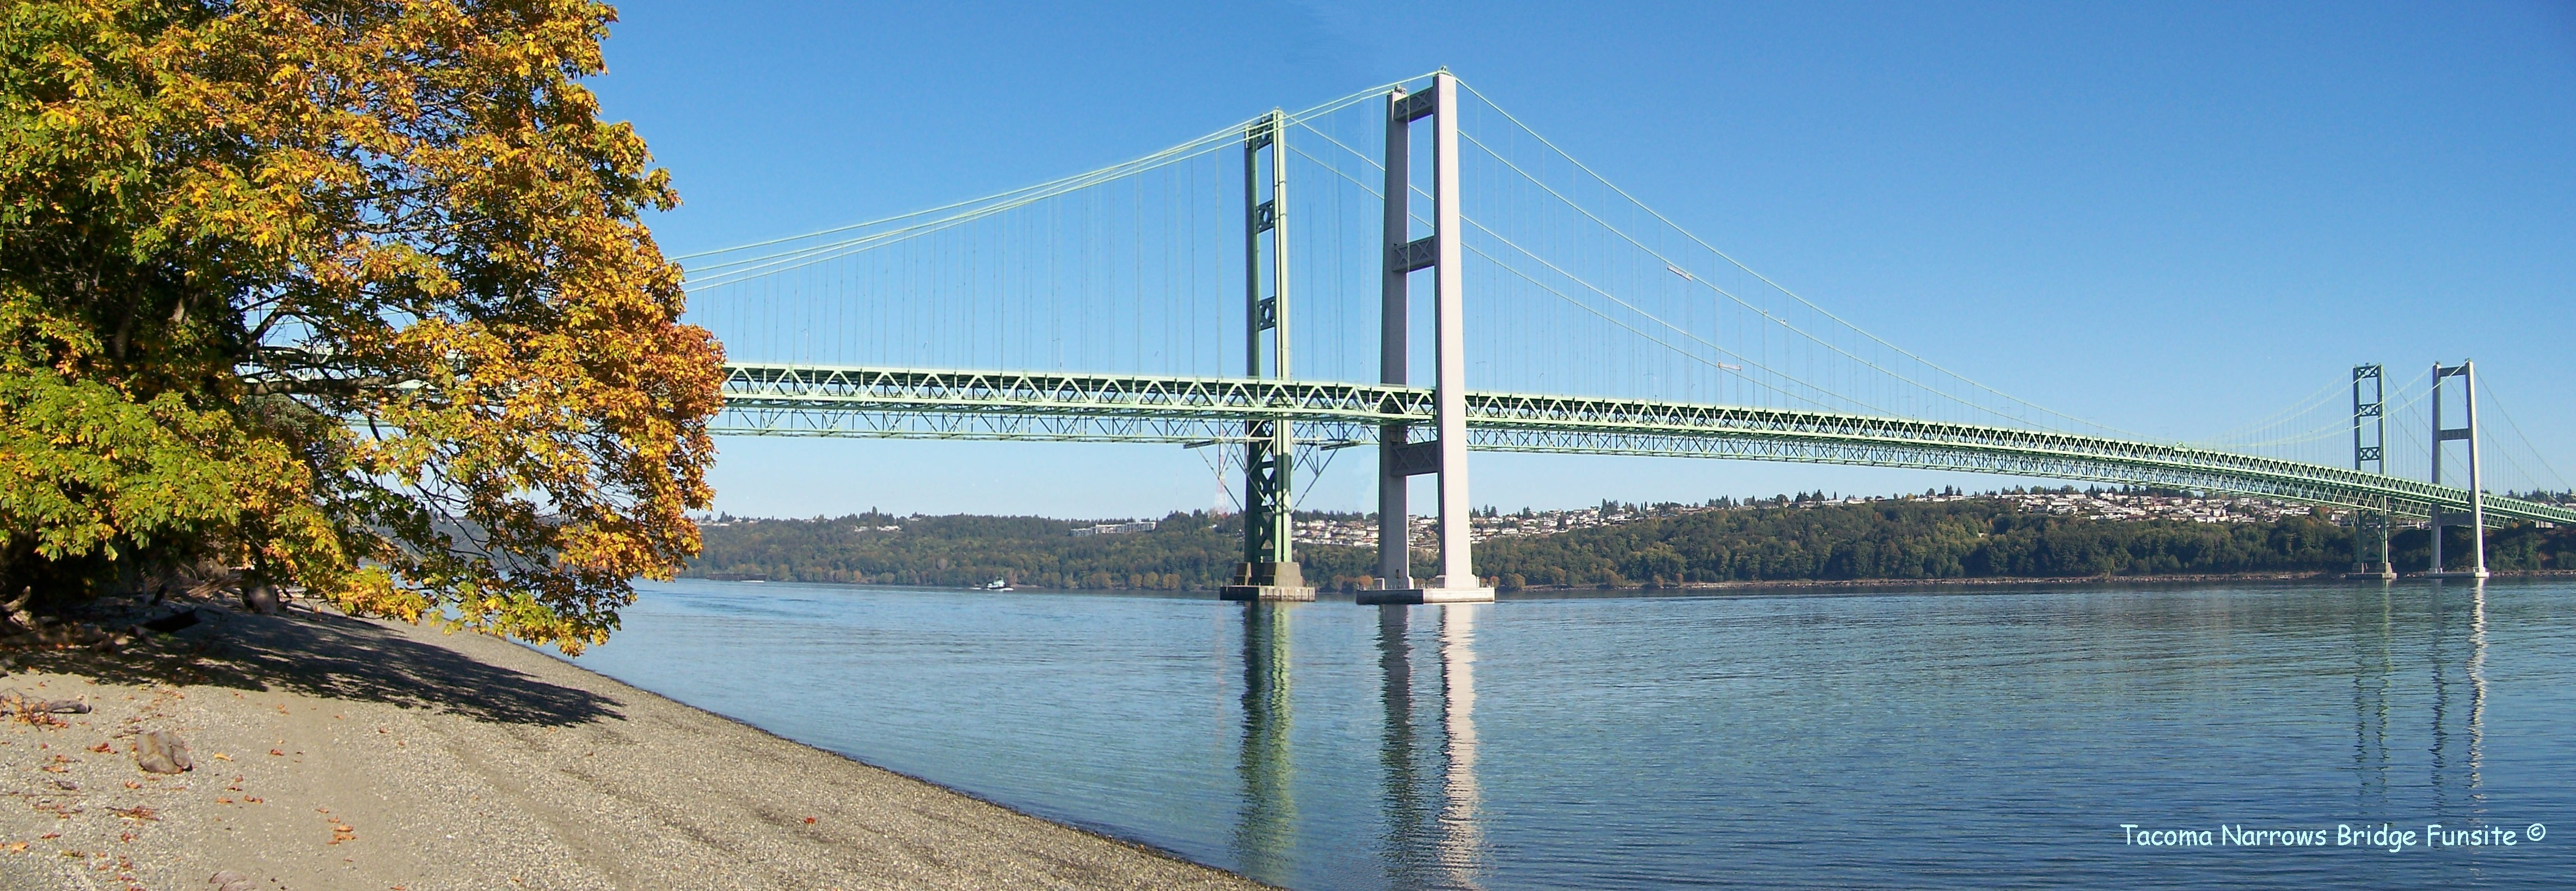 pm roolls tacoma narrows bridge